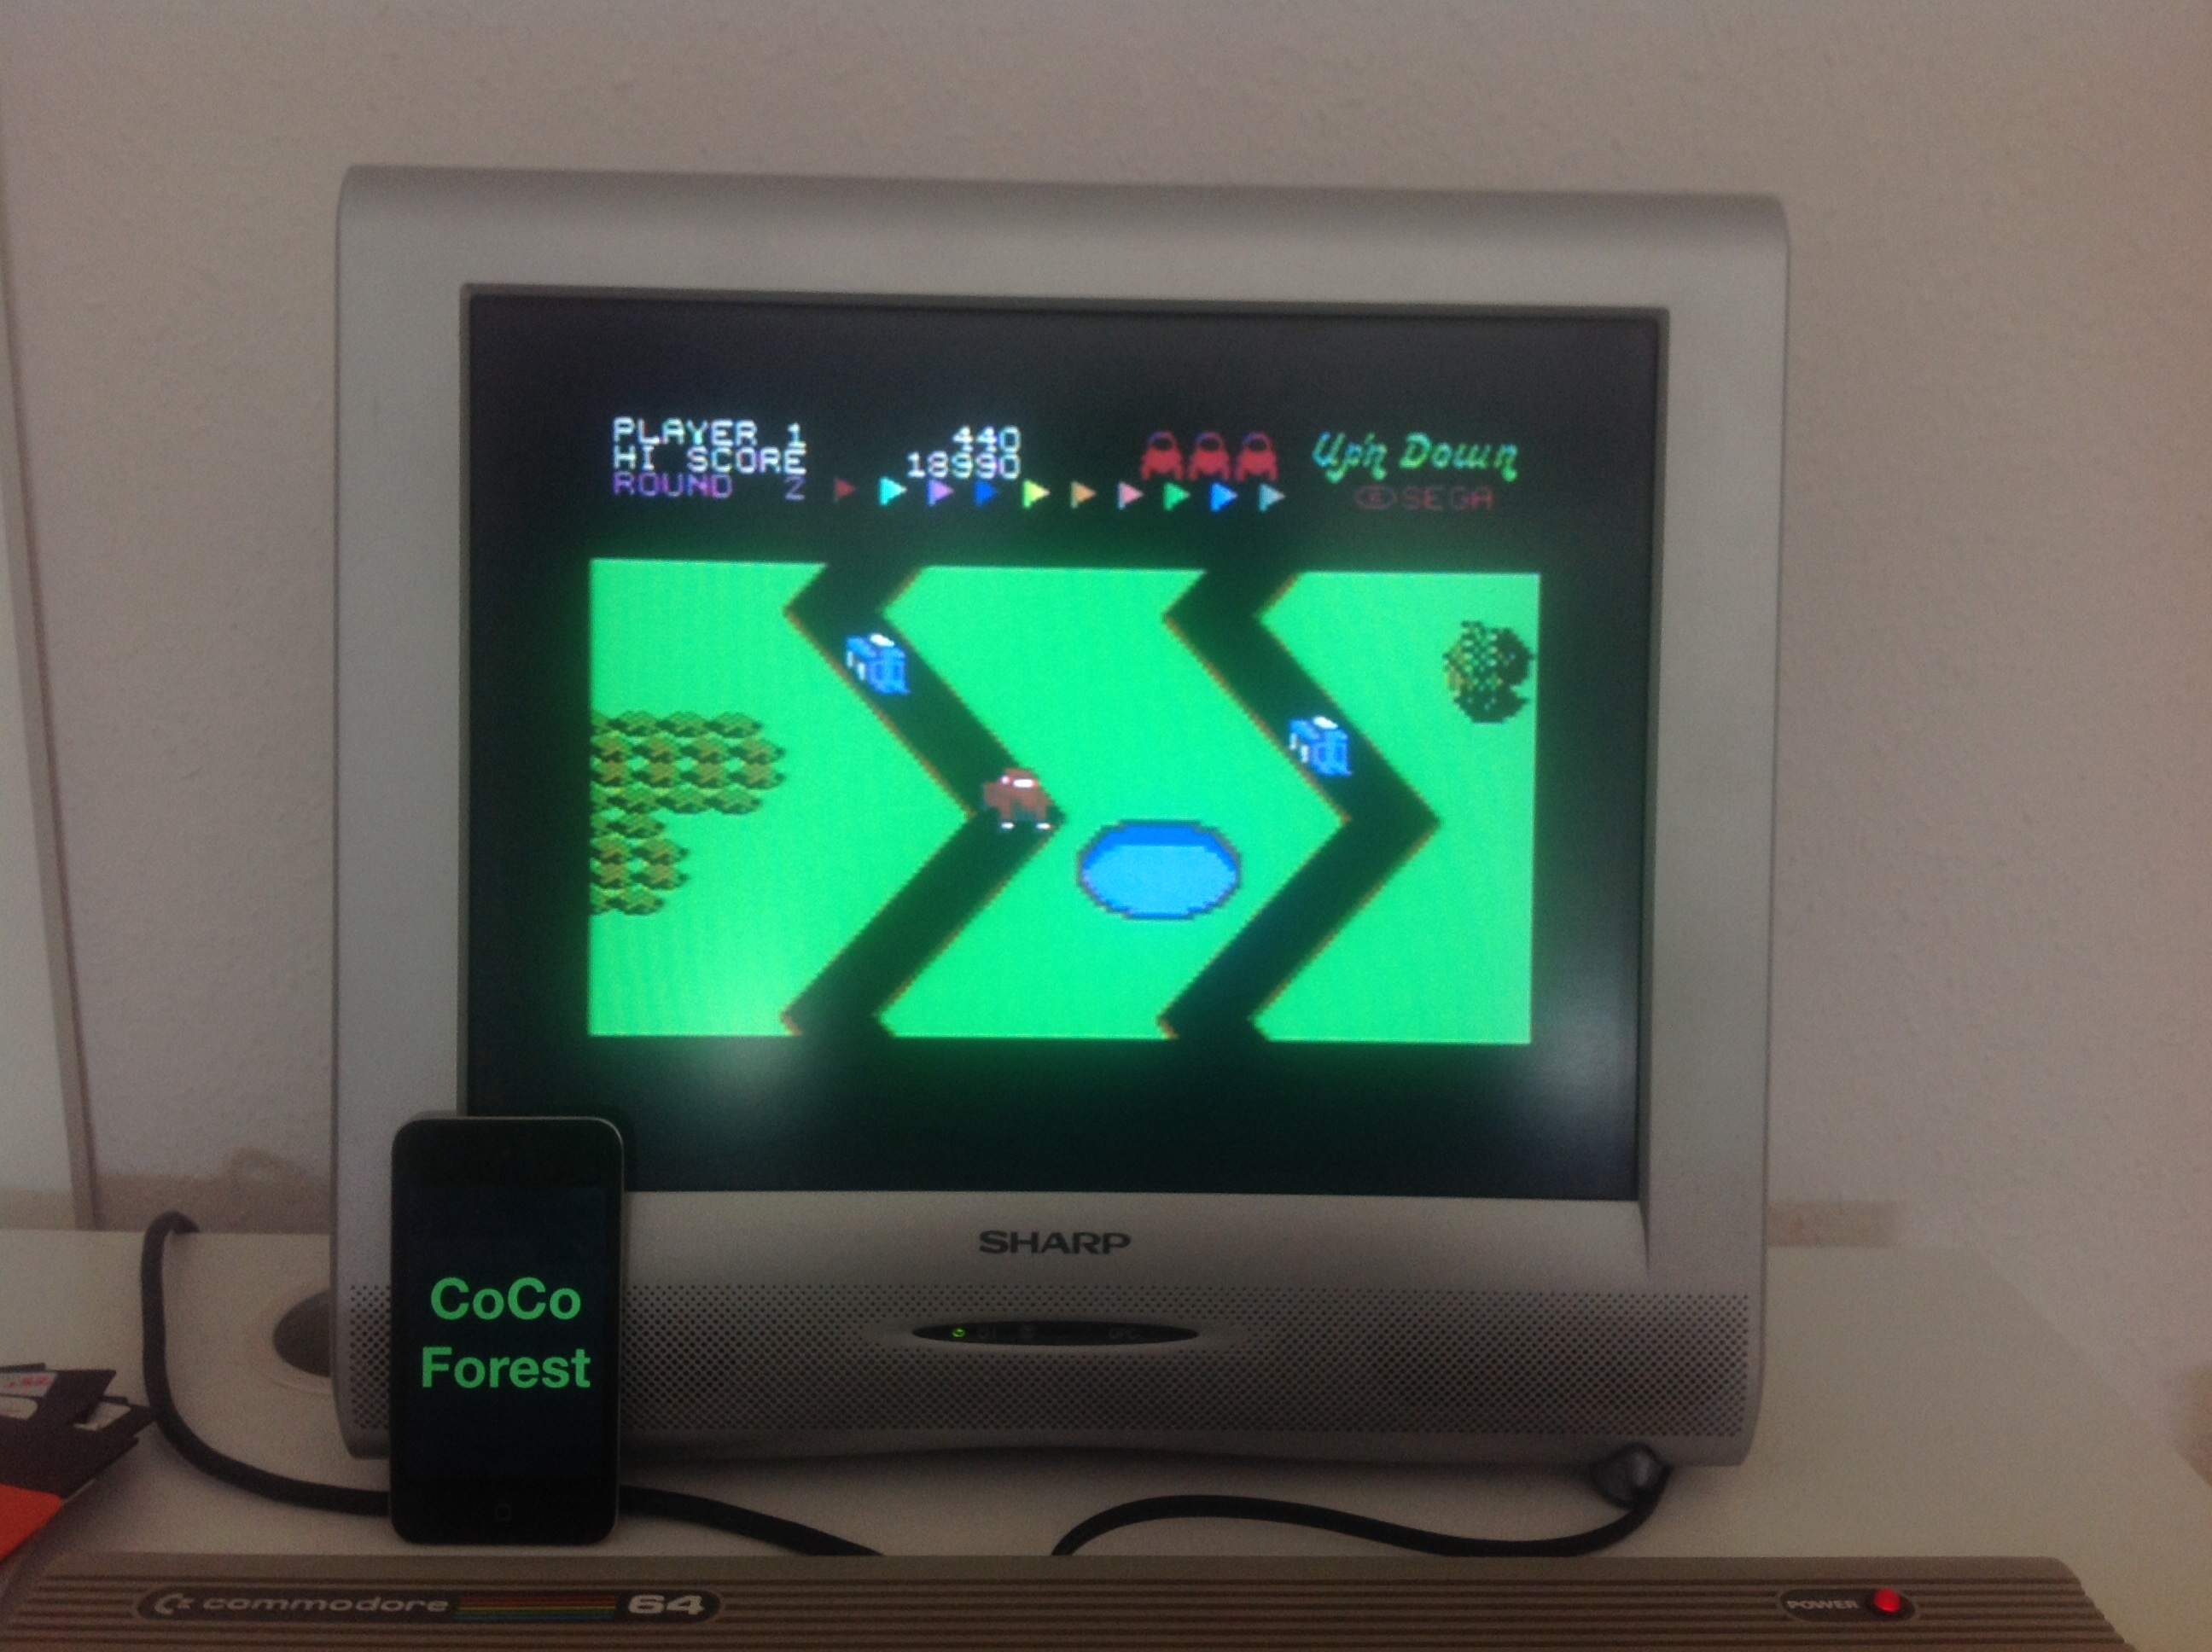 CoCoForest: Up N Down [Medium] (Commodore 64) 18,990 points on 2014-07-24 12:02:31